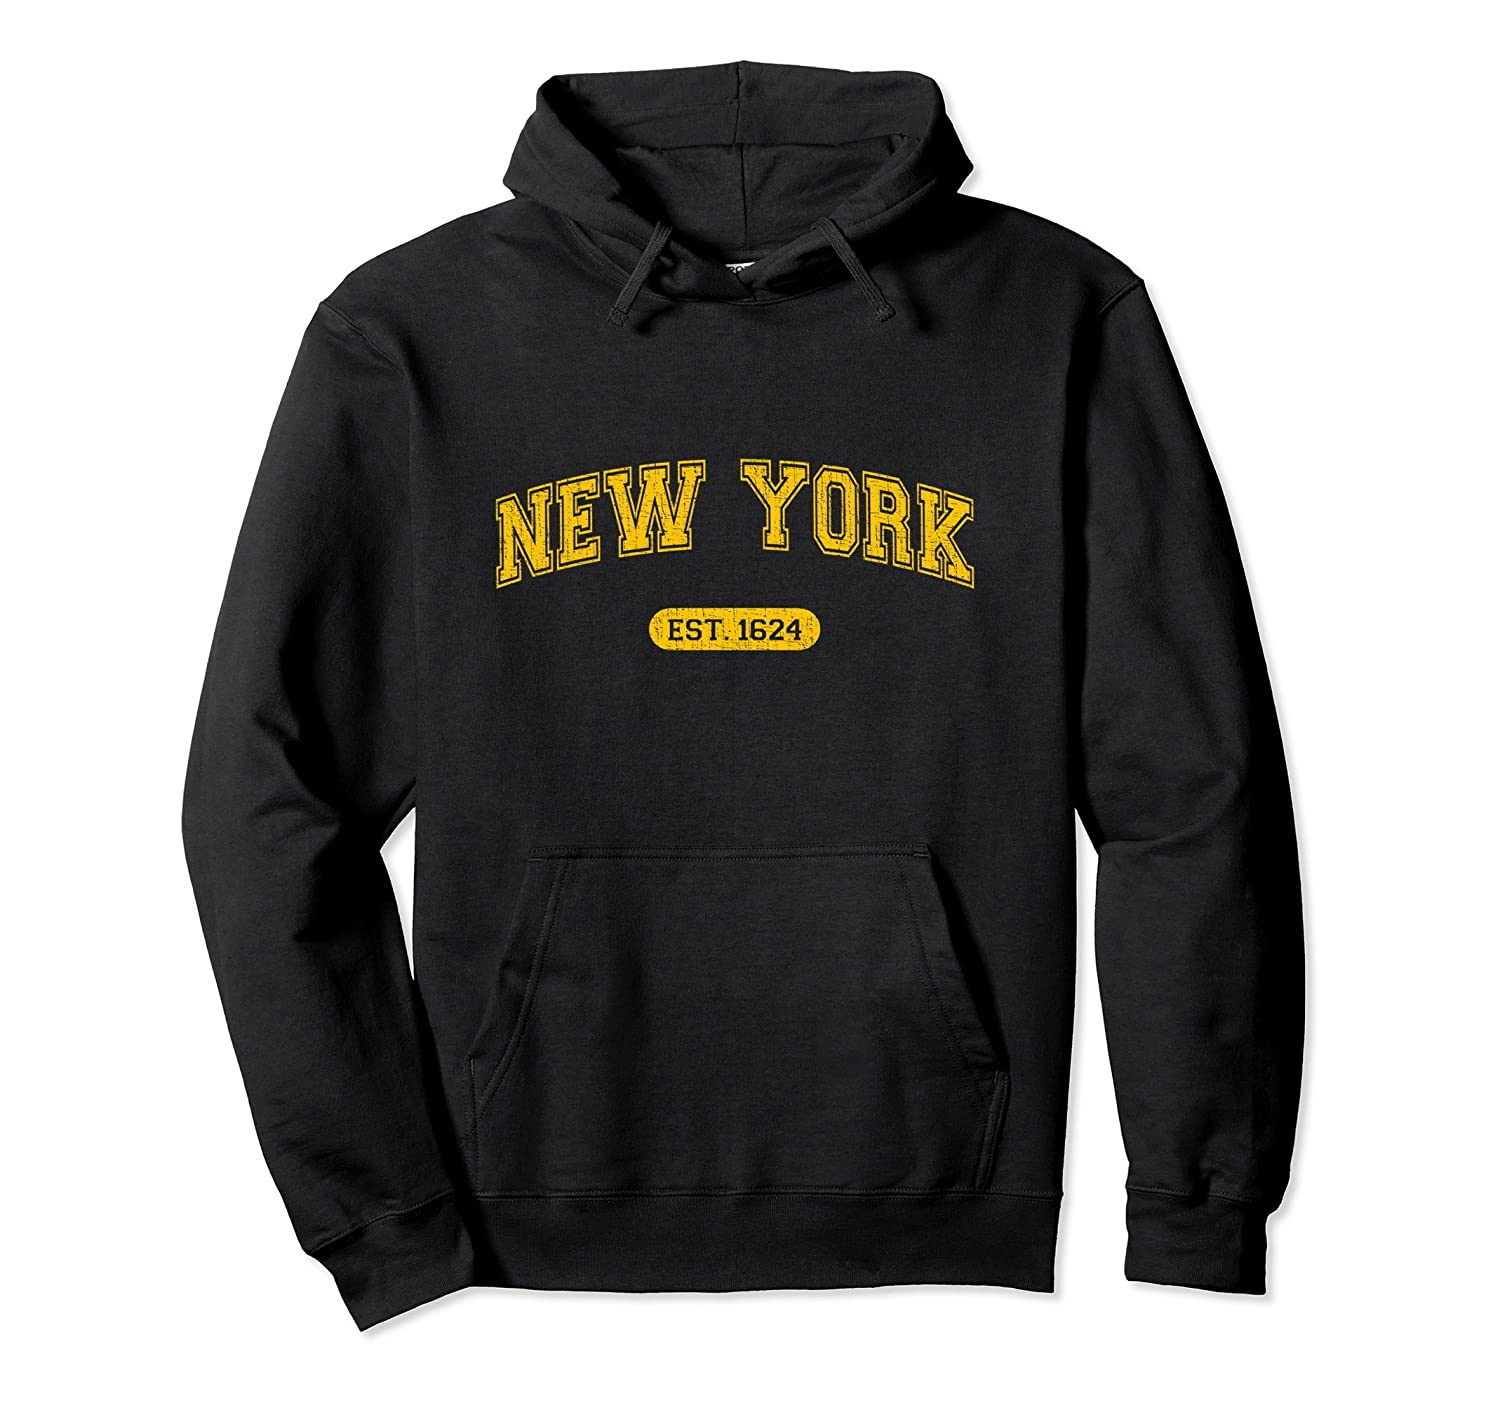 Retro School-style New York 1624 Pullover Hoodie-ah my shirt one gift